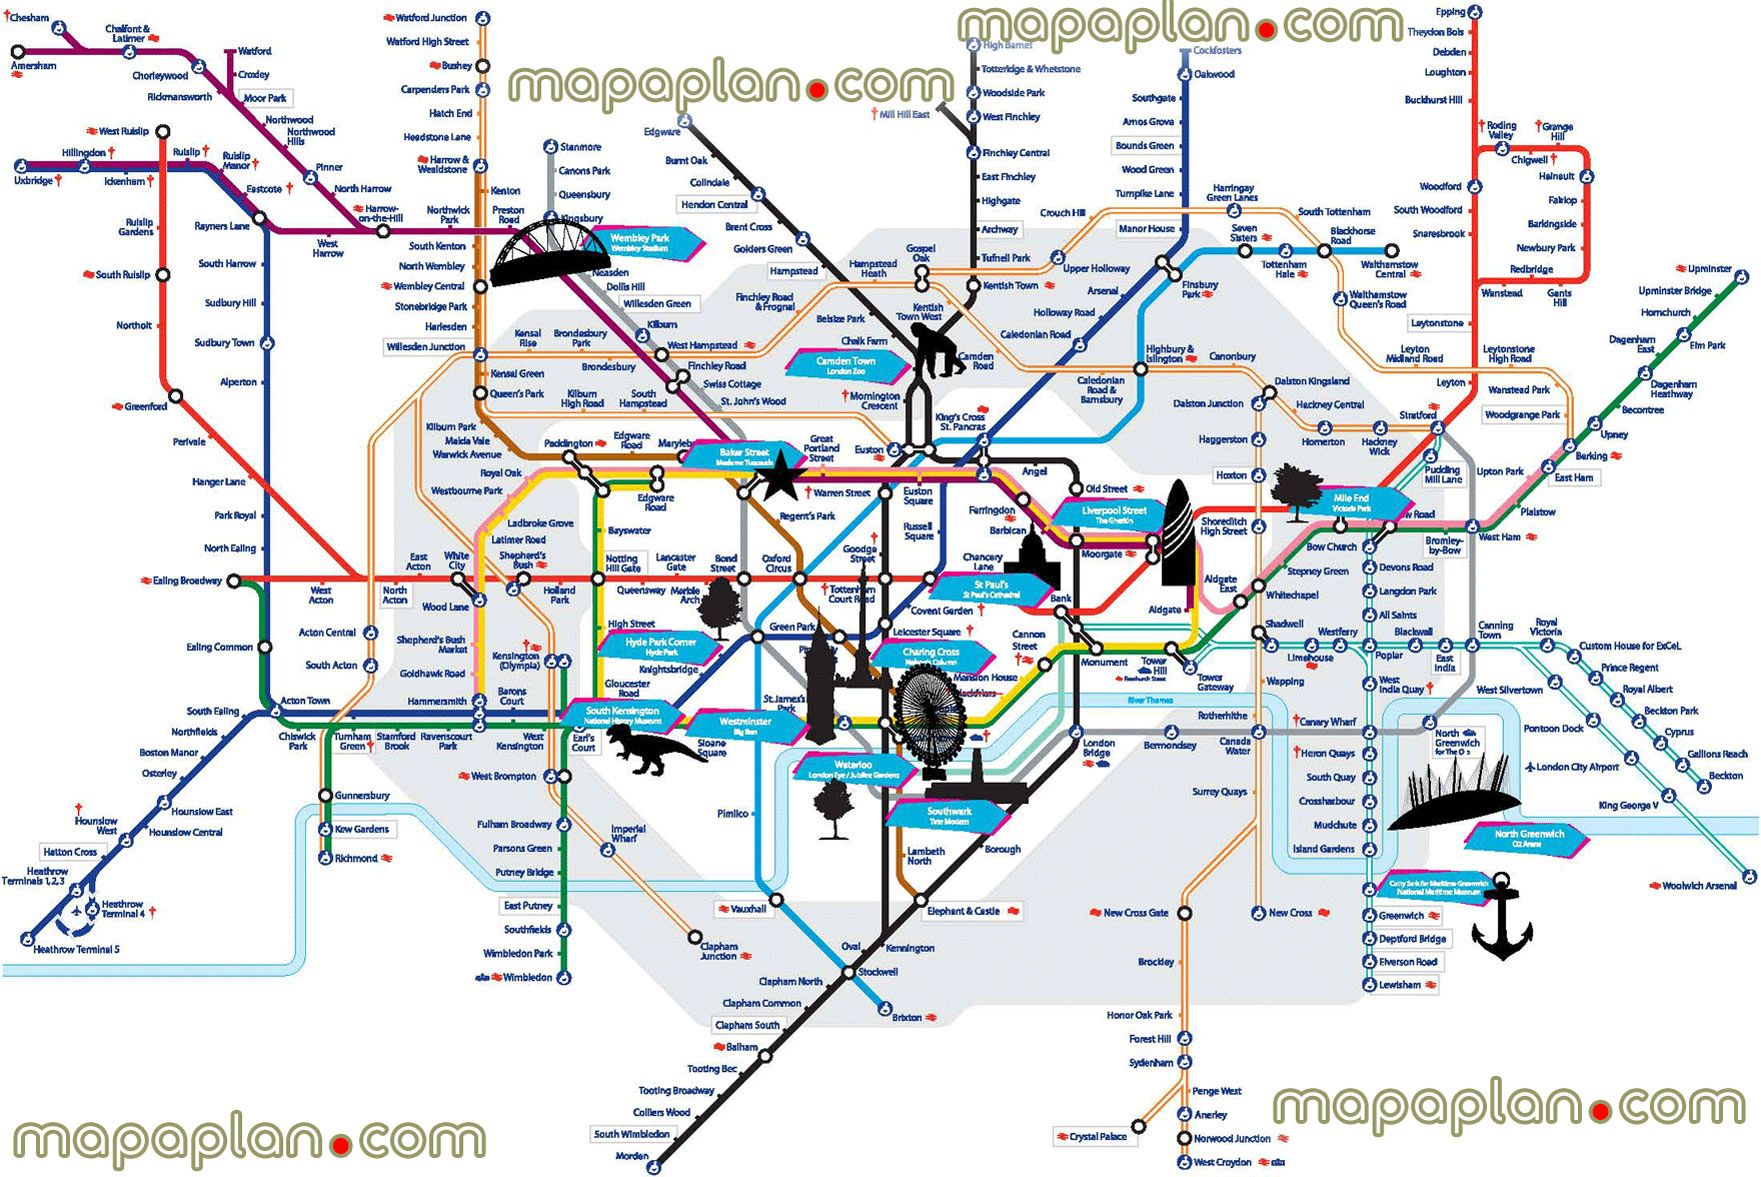 tube tourist spots points interest overlay greenwich national history museum london zoos london top tourist attractions map